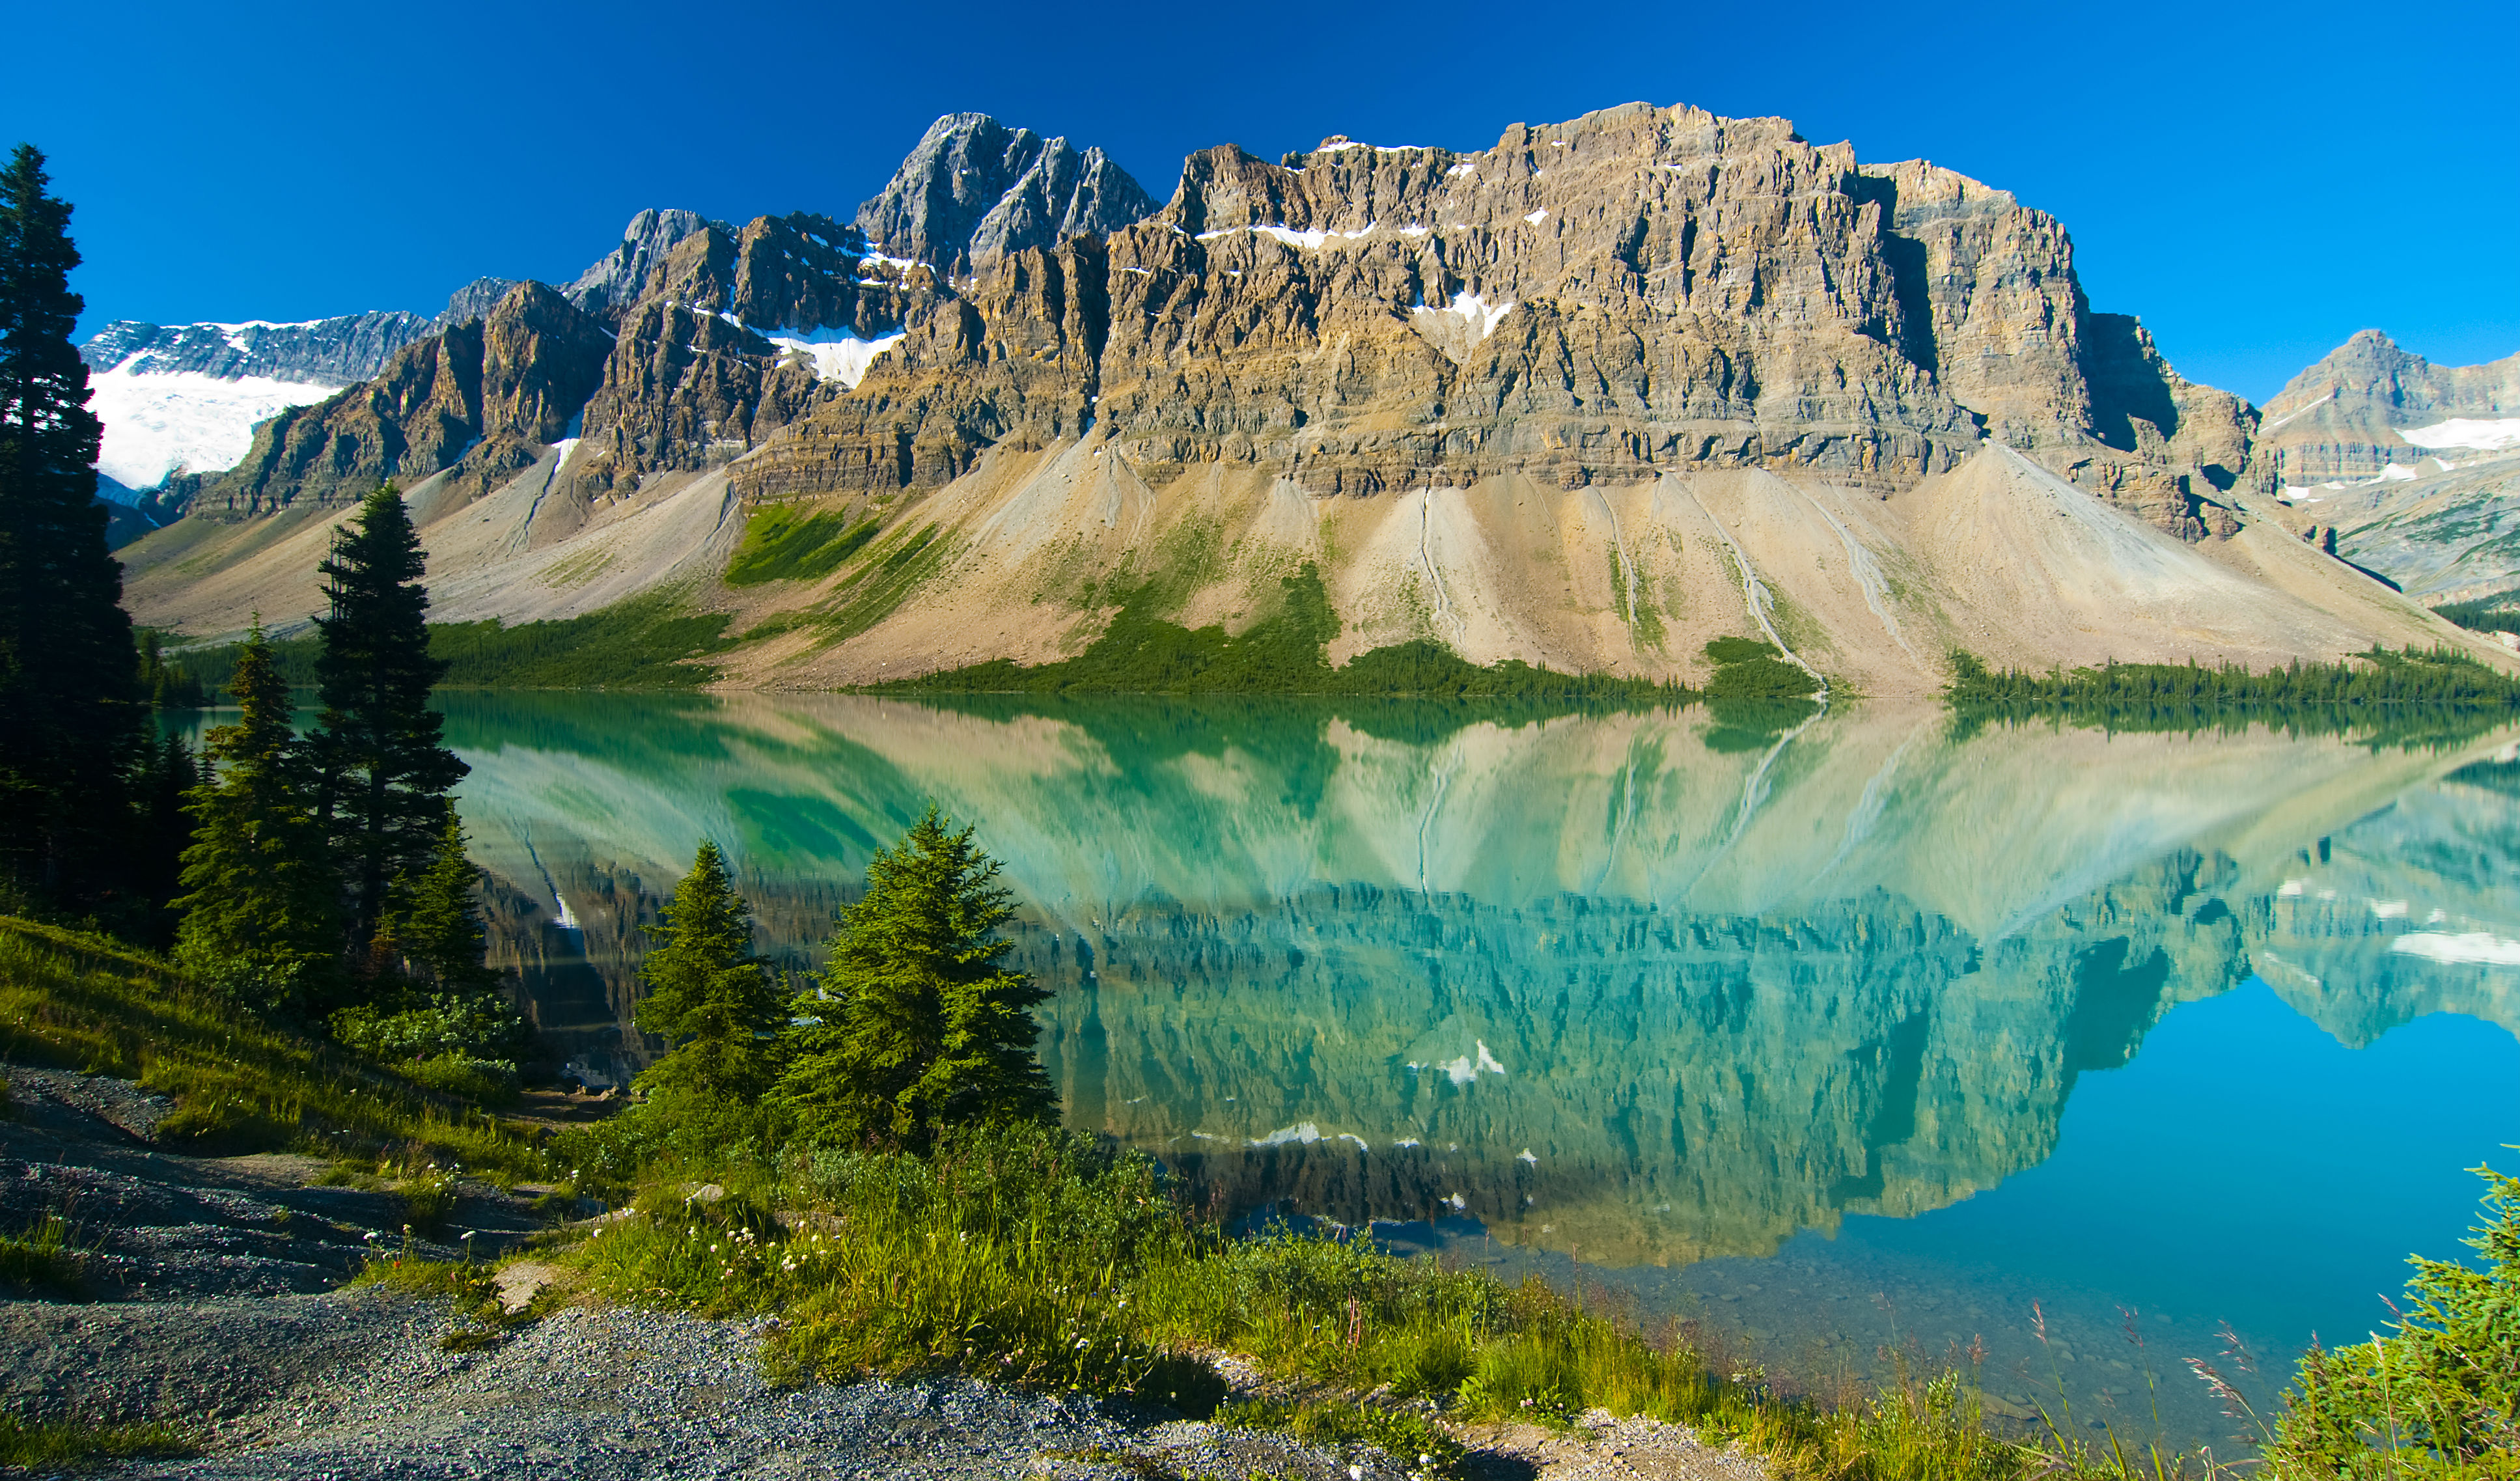 Take in the breath-taking glacial views